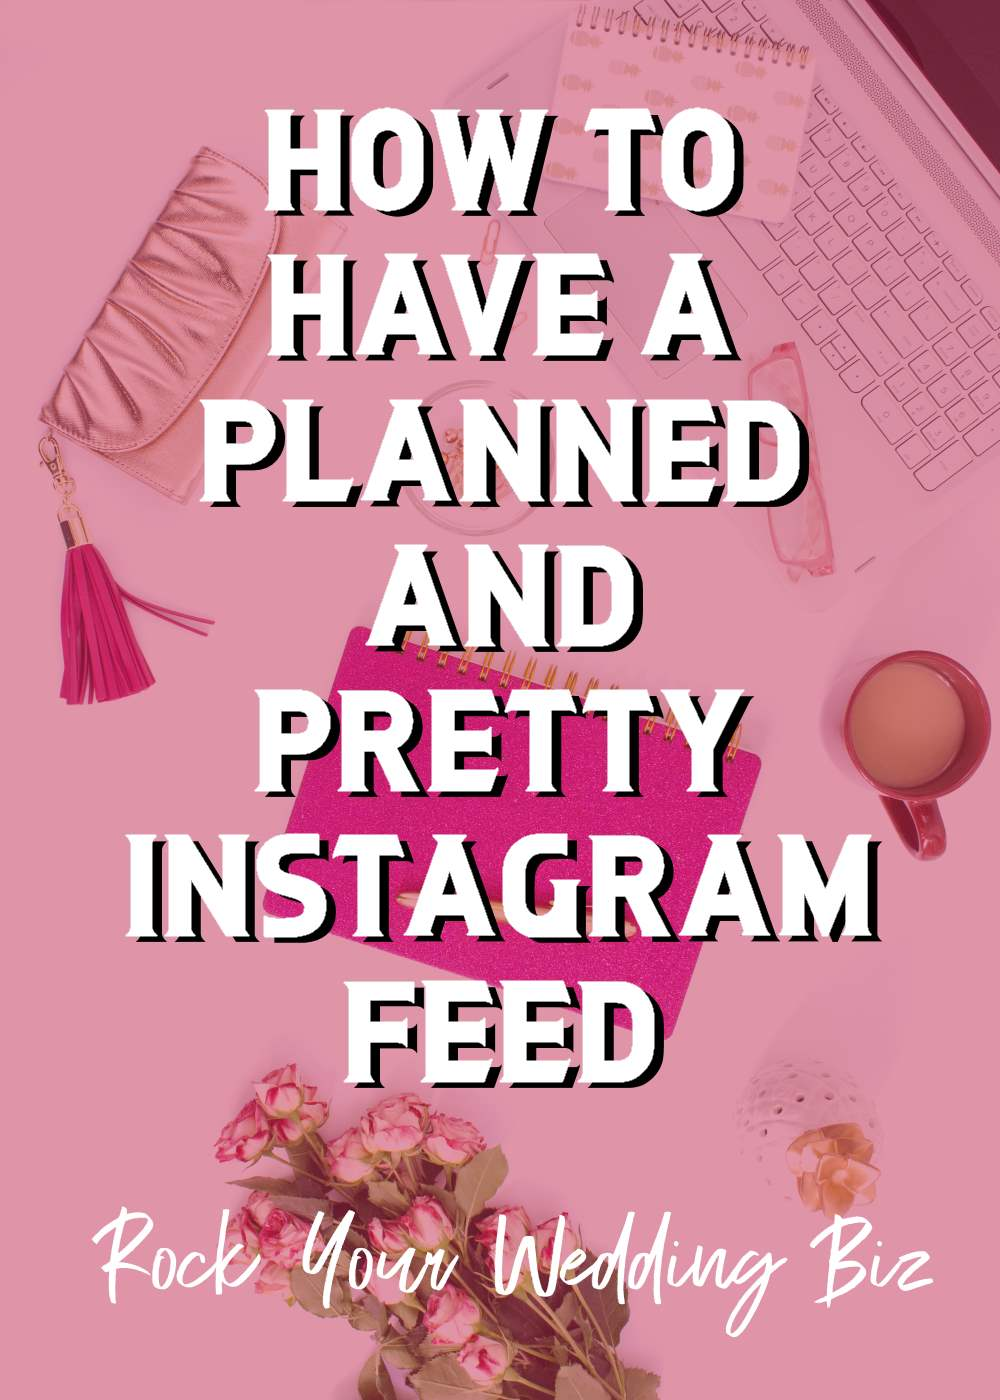 Episode 22 - How to Have a Planned and Pretty Instagram Feed